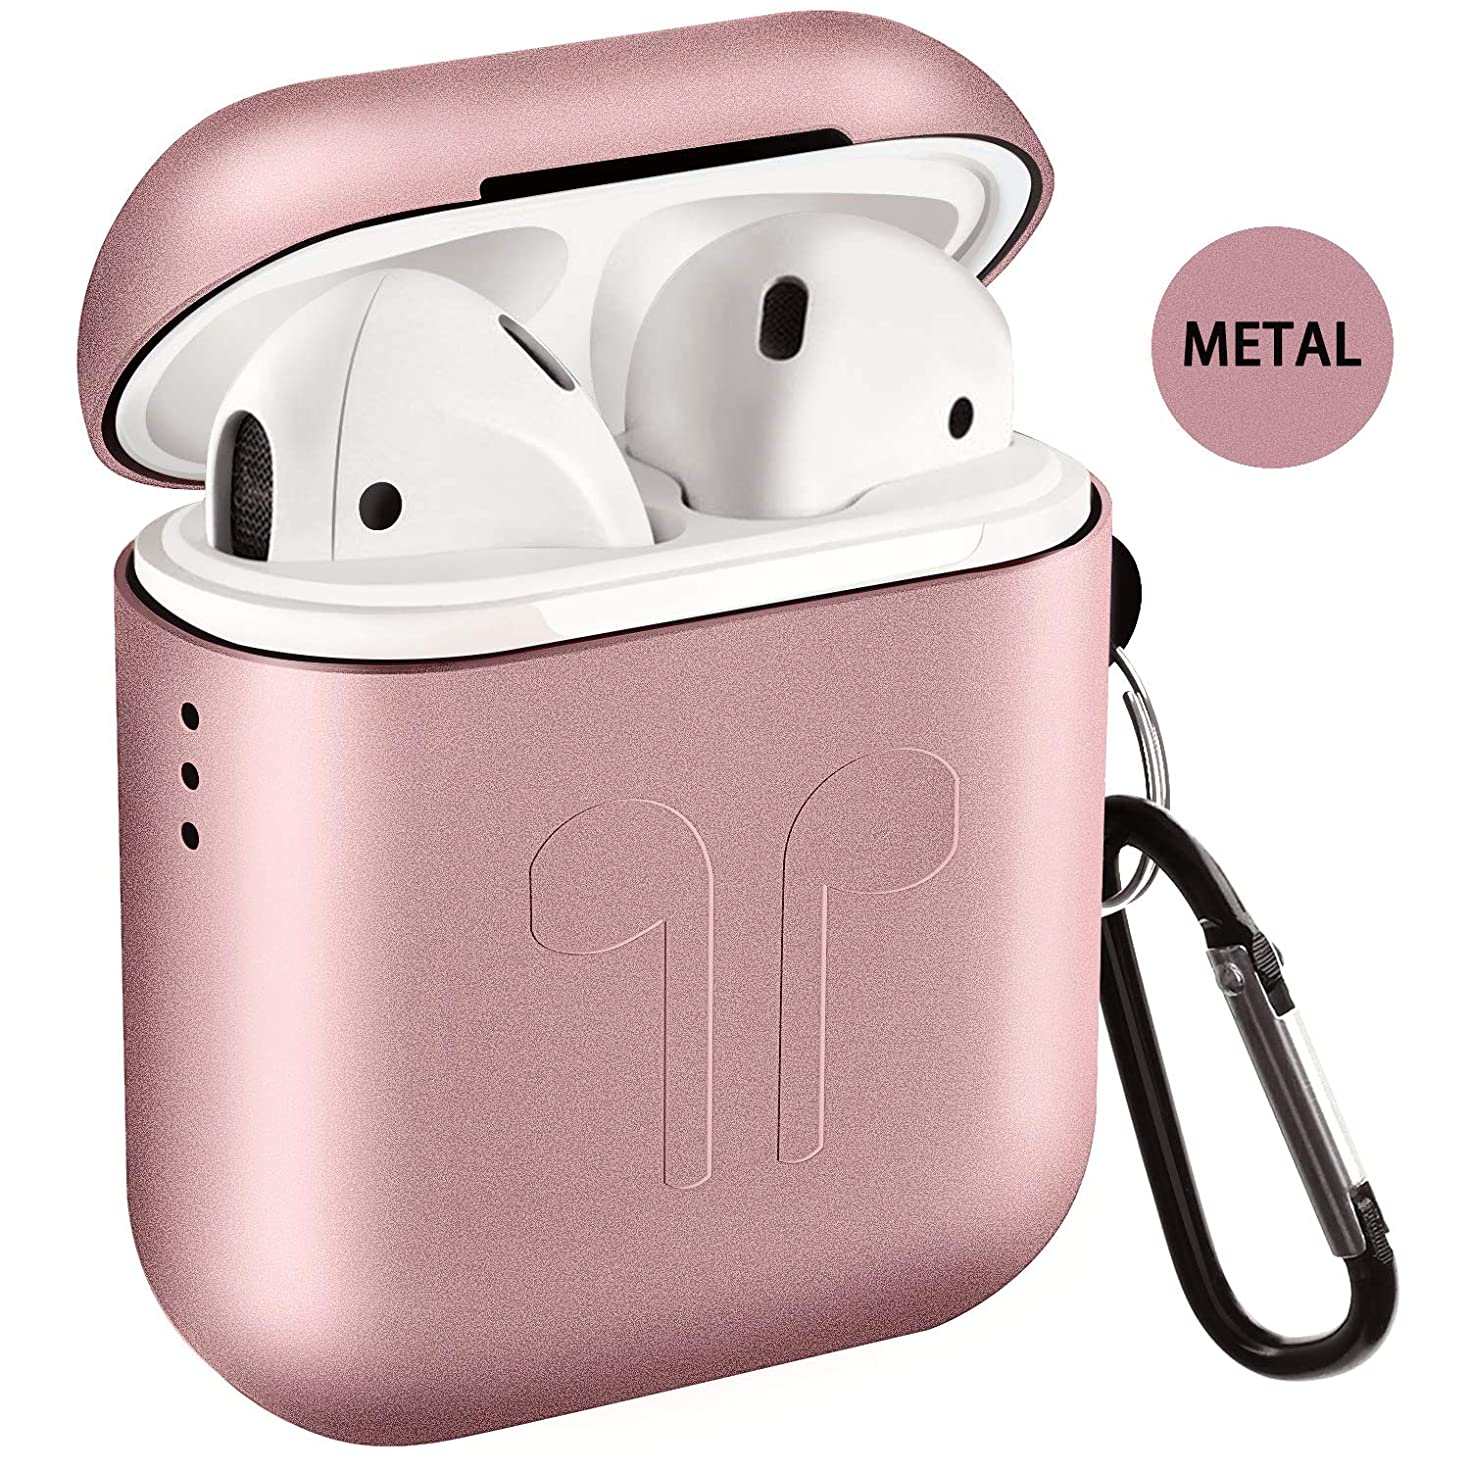 Metal Airpods Case 2019 Newest Full Protective Skin Cover Accessories Kits Compatible Airpods 1&2 Charging Case[Not for Wireless Charging Case]